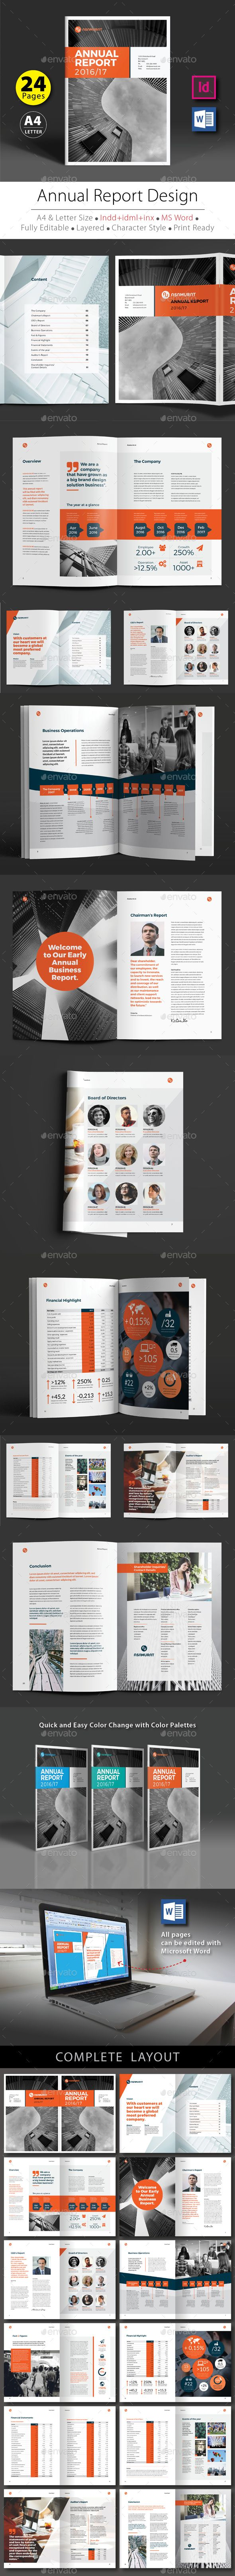 Annual Report Design Template InDesign INDD